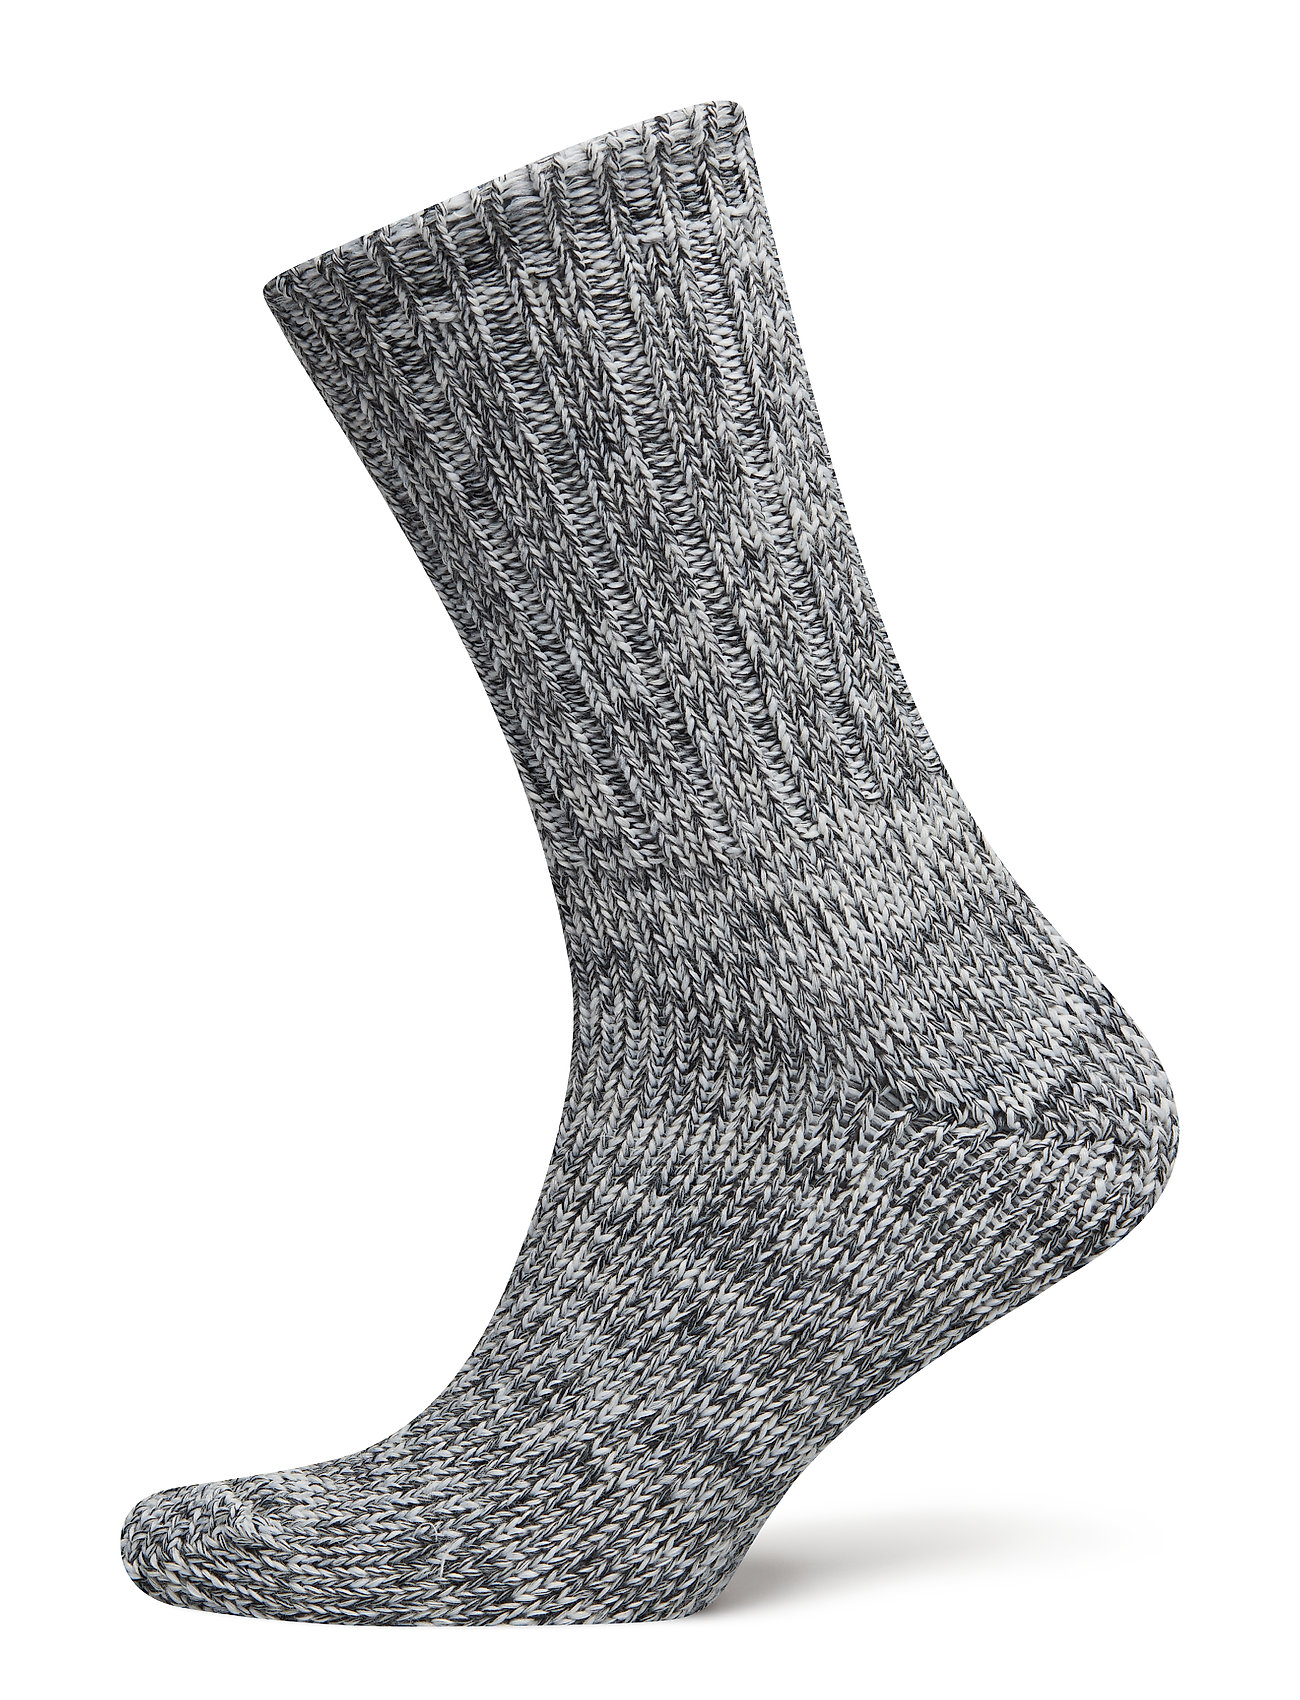 Grey Grey Sockslight Egtved Grey Egtved Business Egtved Business Business Sockslight Sockslight Egtved Business QexdBorCWE